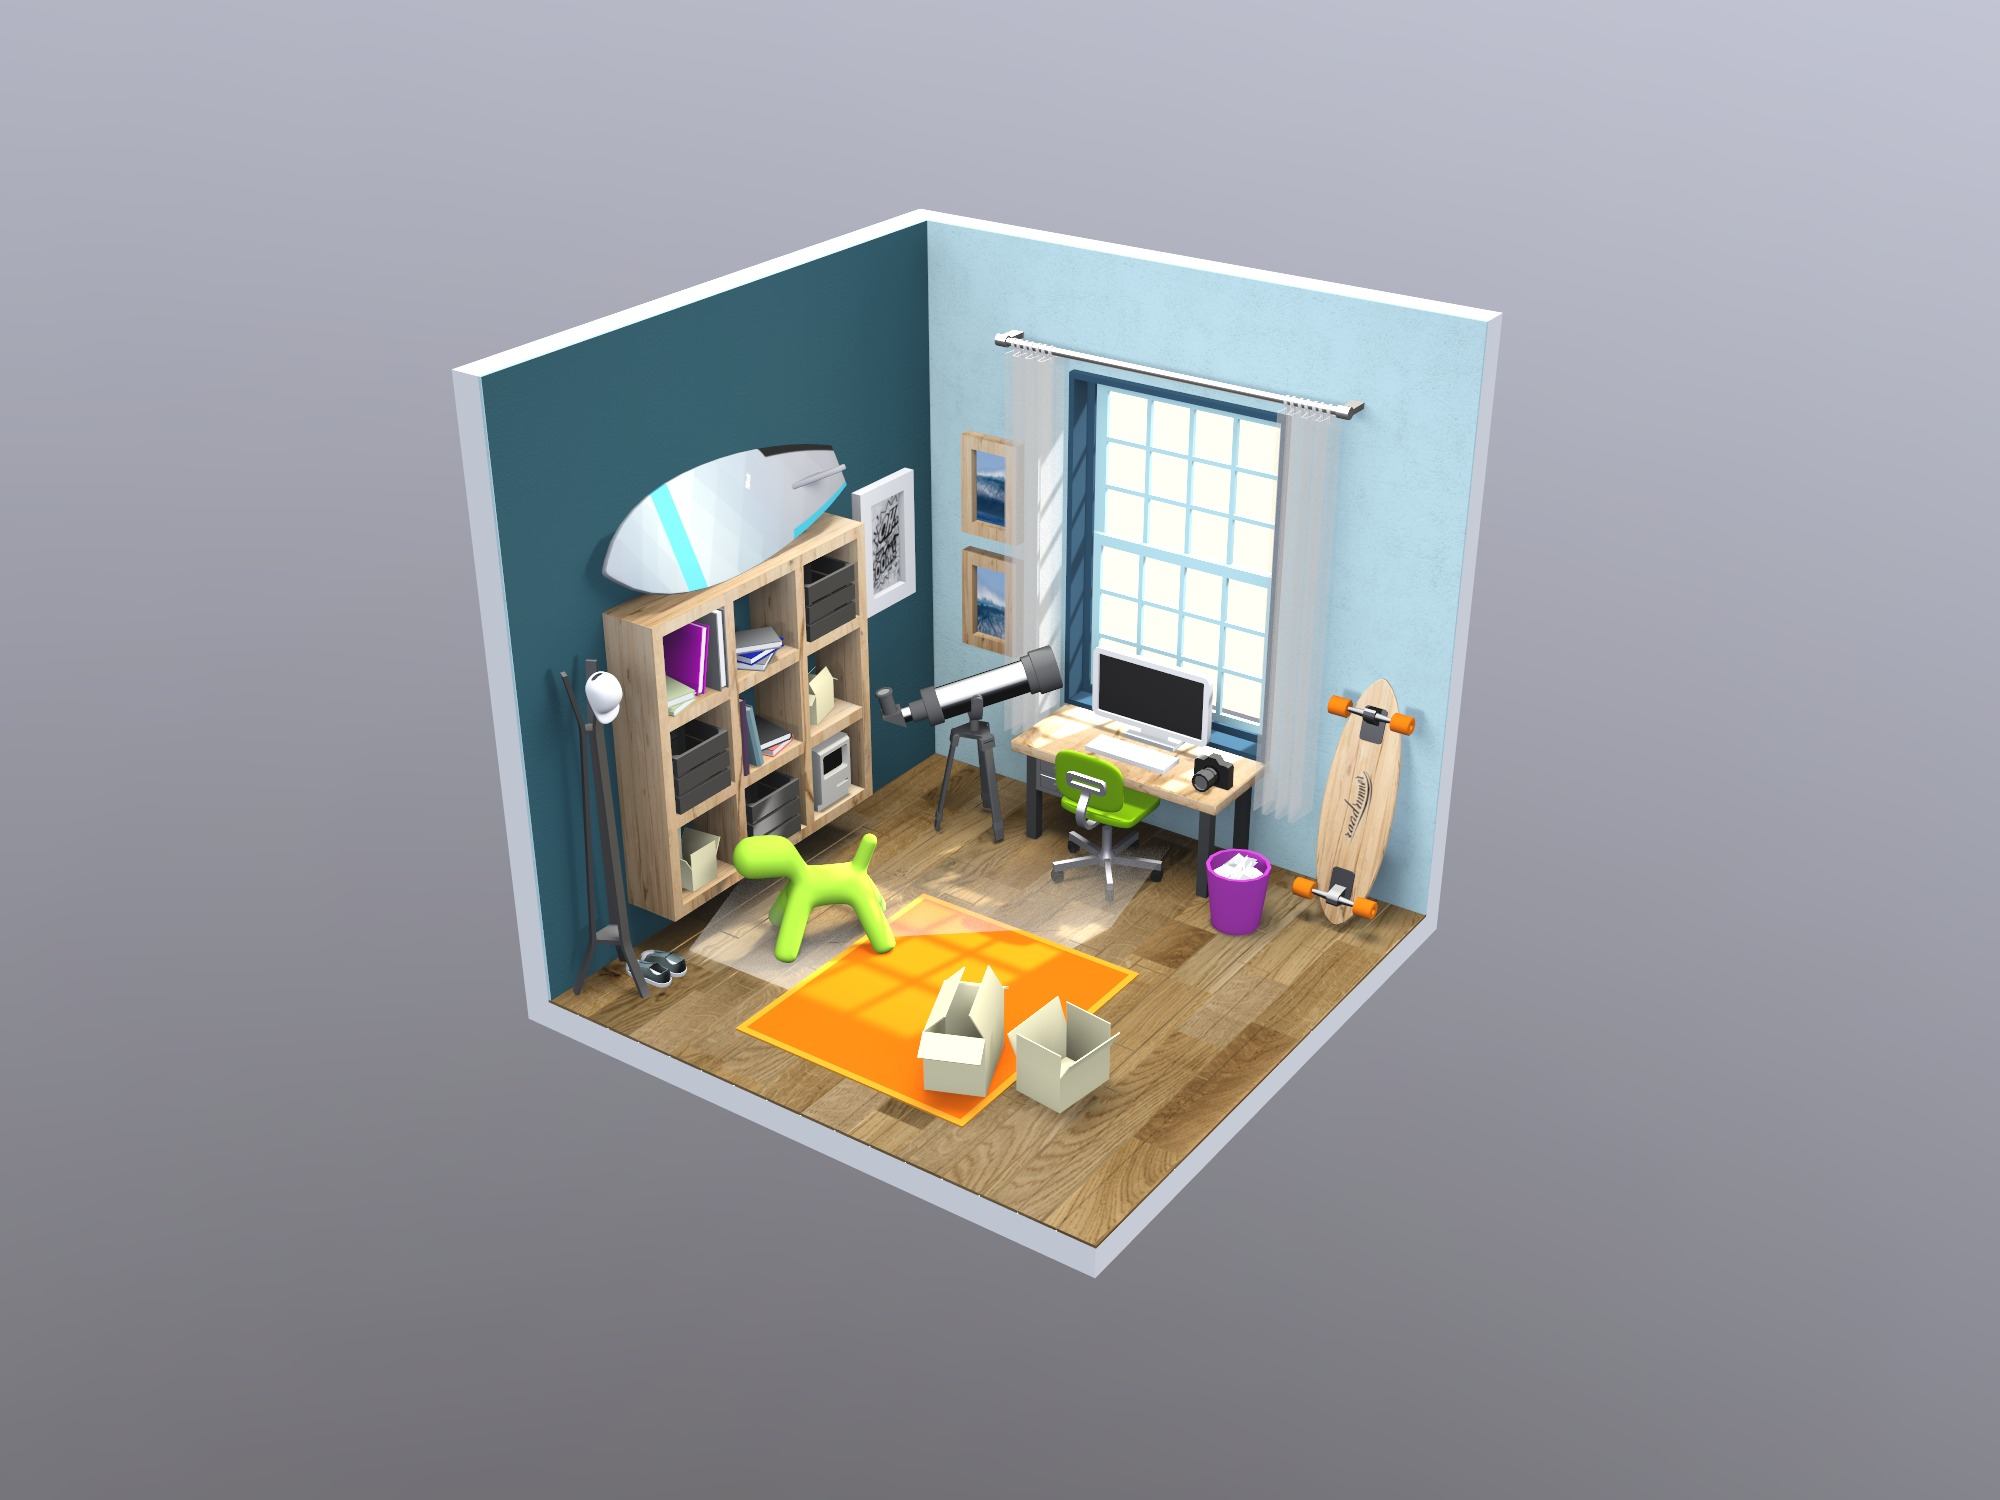 Isometric student's room  - 3D design by Vectary templates Jun 4, 2018